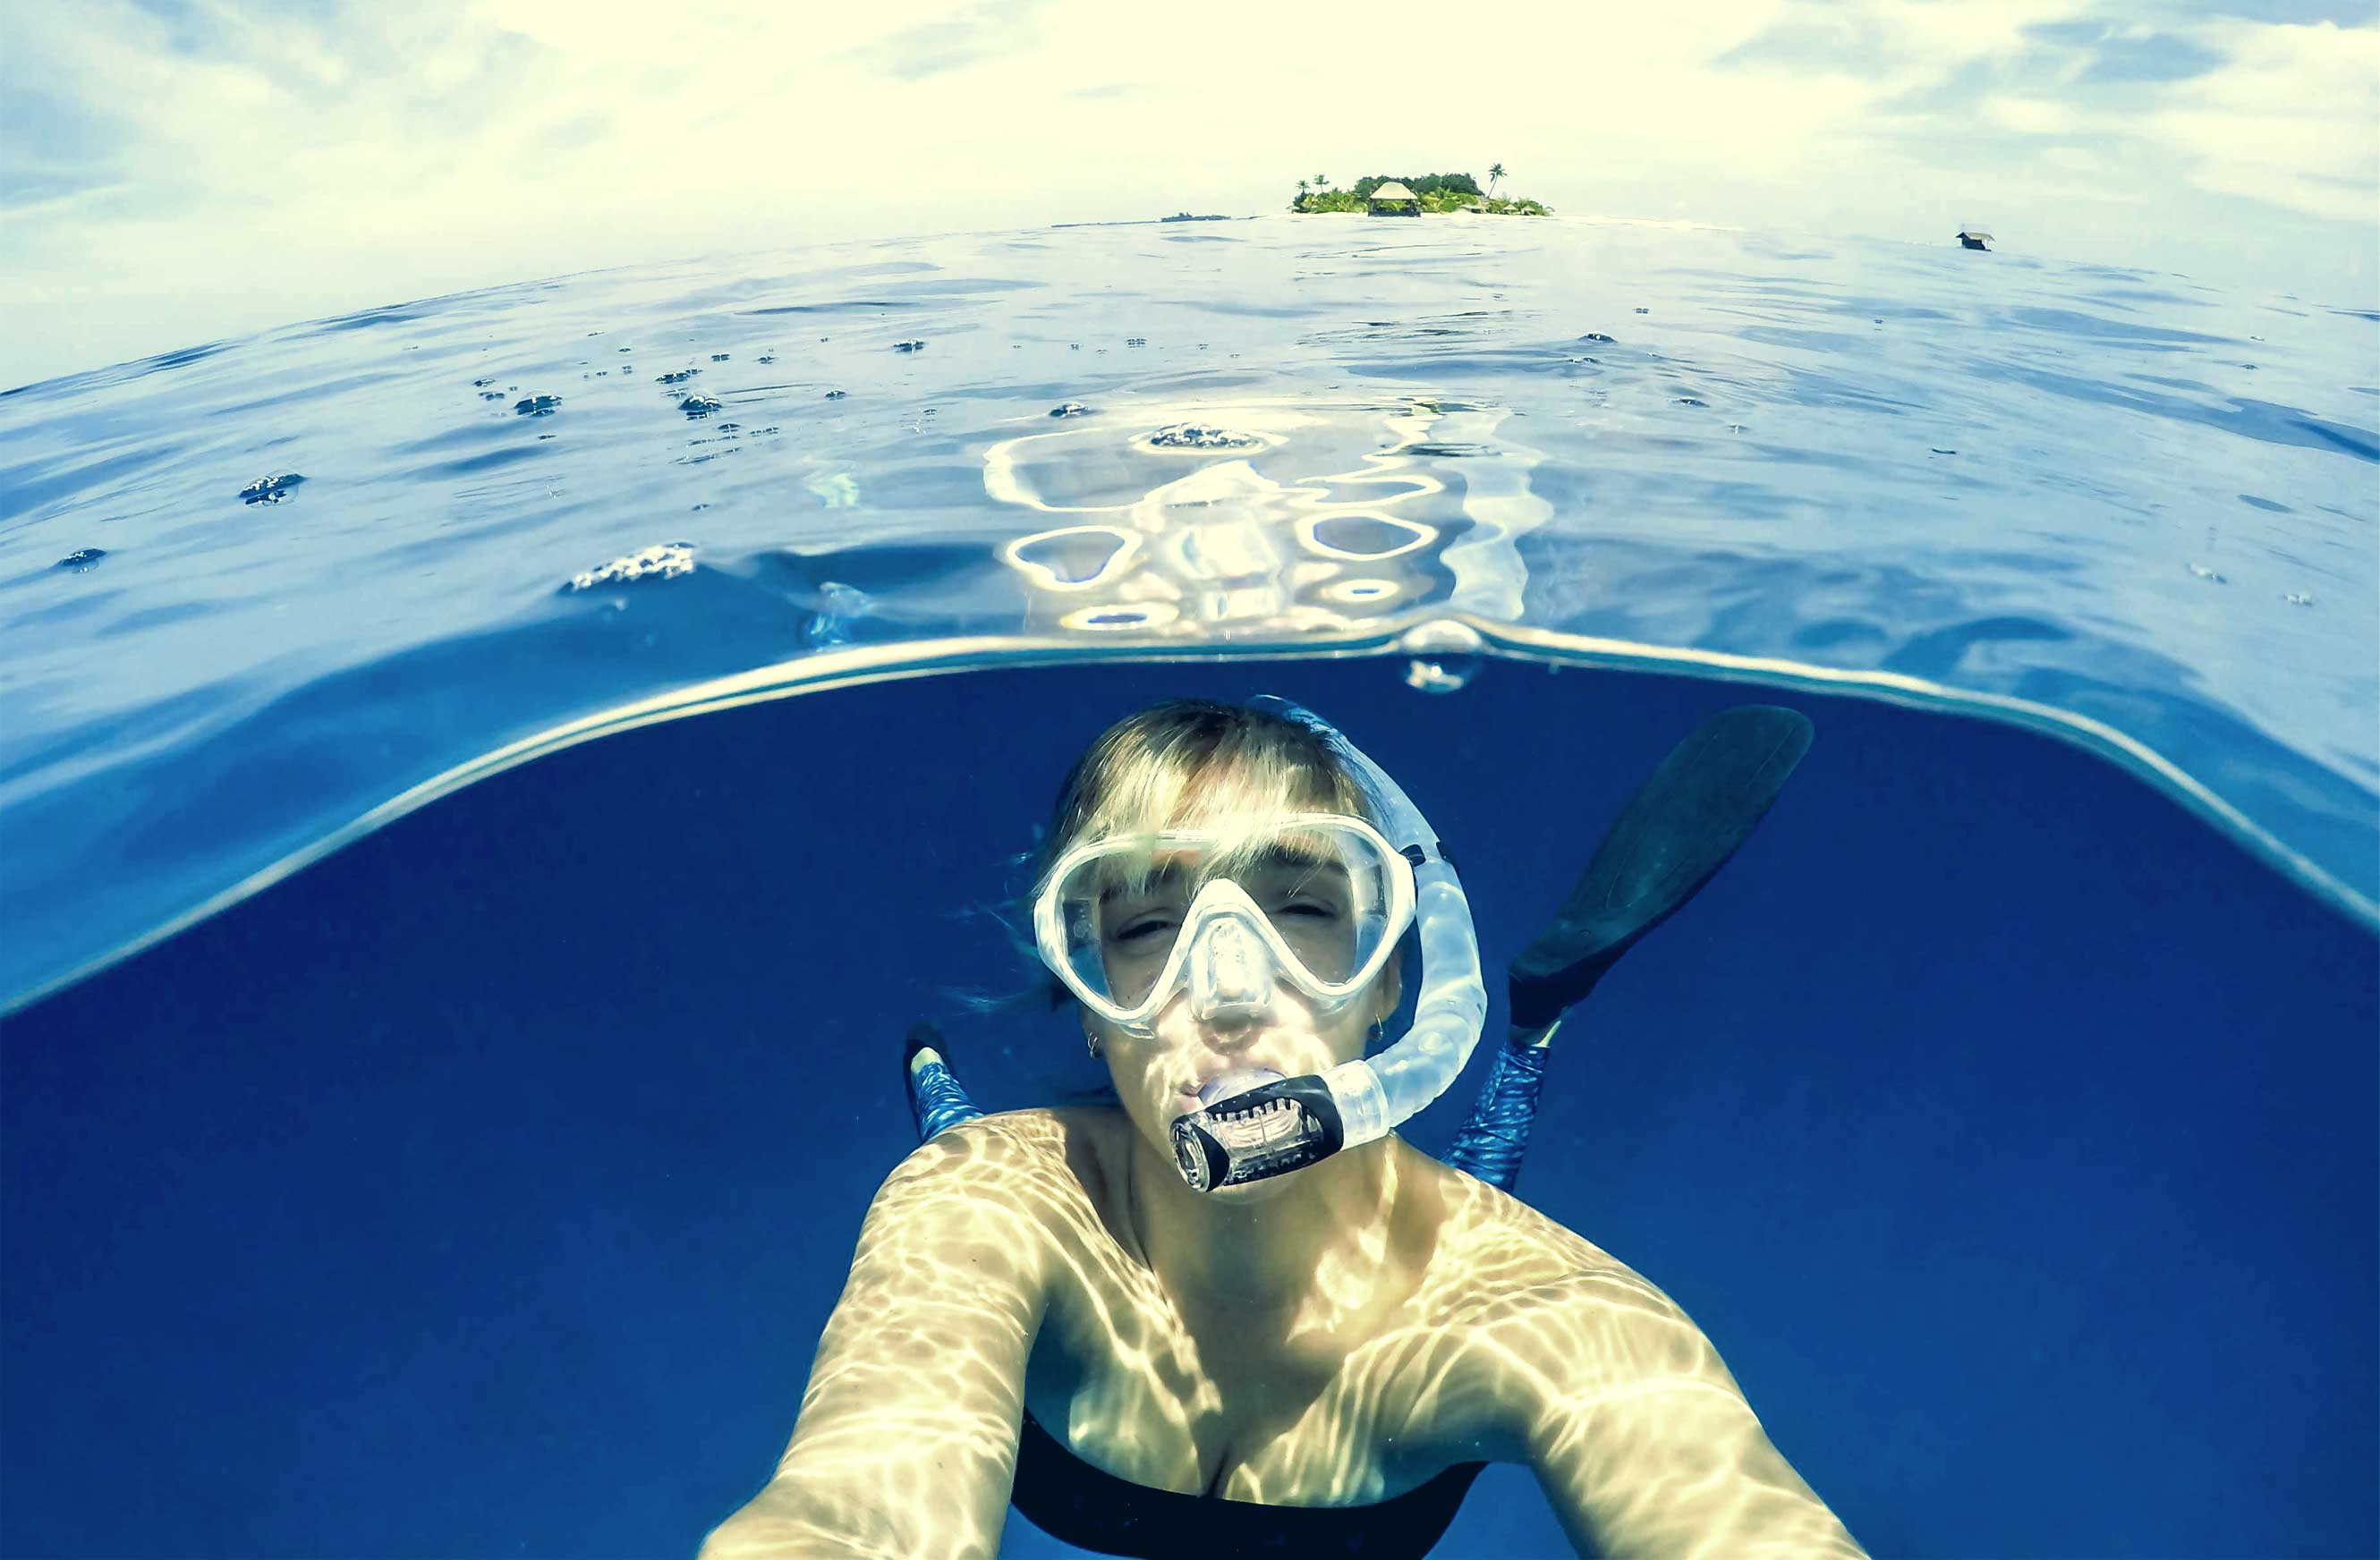 Photo of a woman taking a selfie underwater while wearing a clear mask and snorkel